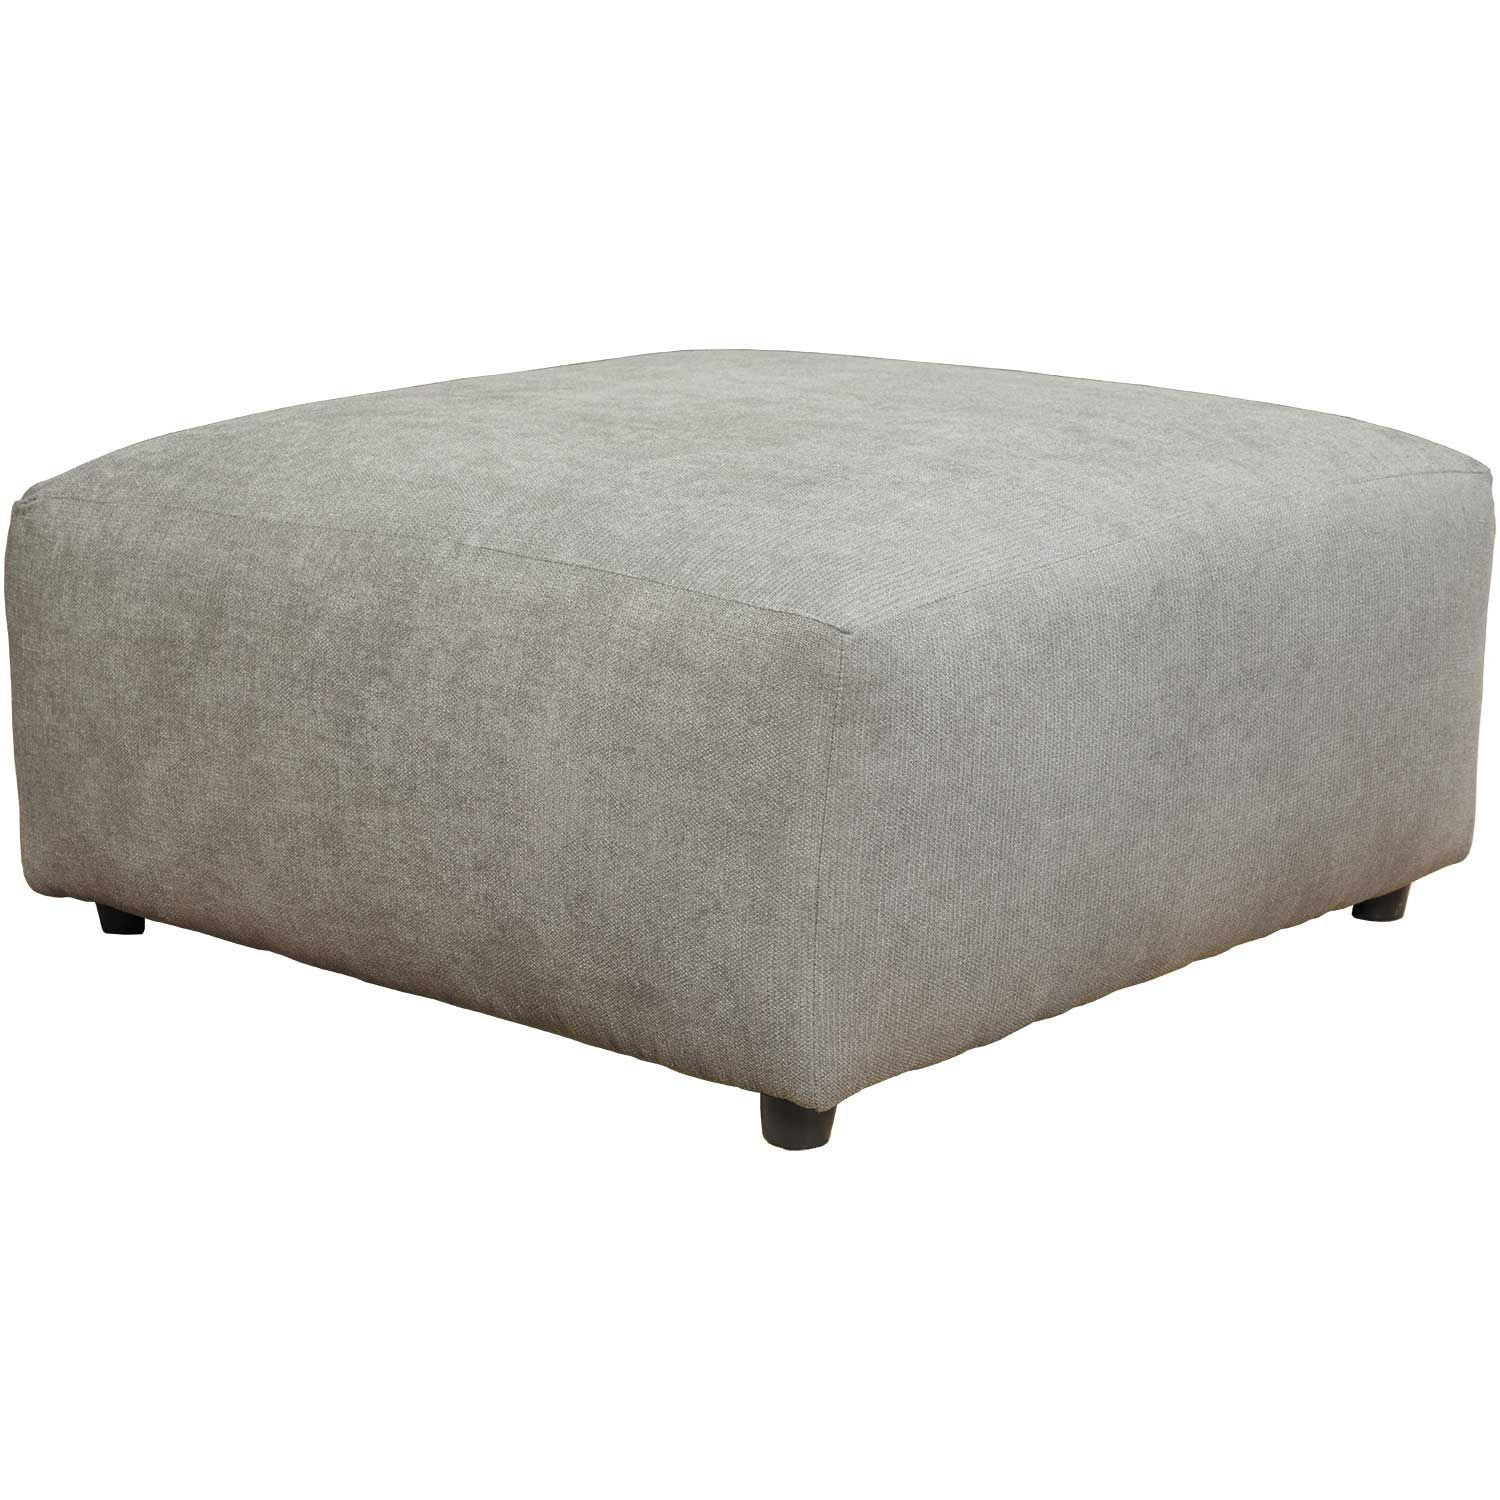 Picture of Jayceon Steel Cocktail Ottoman